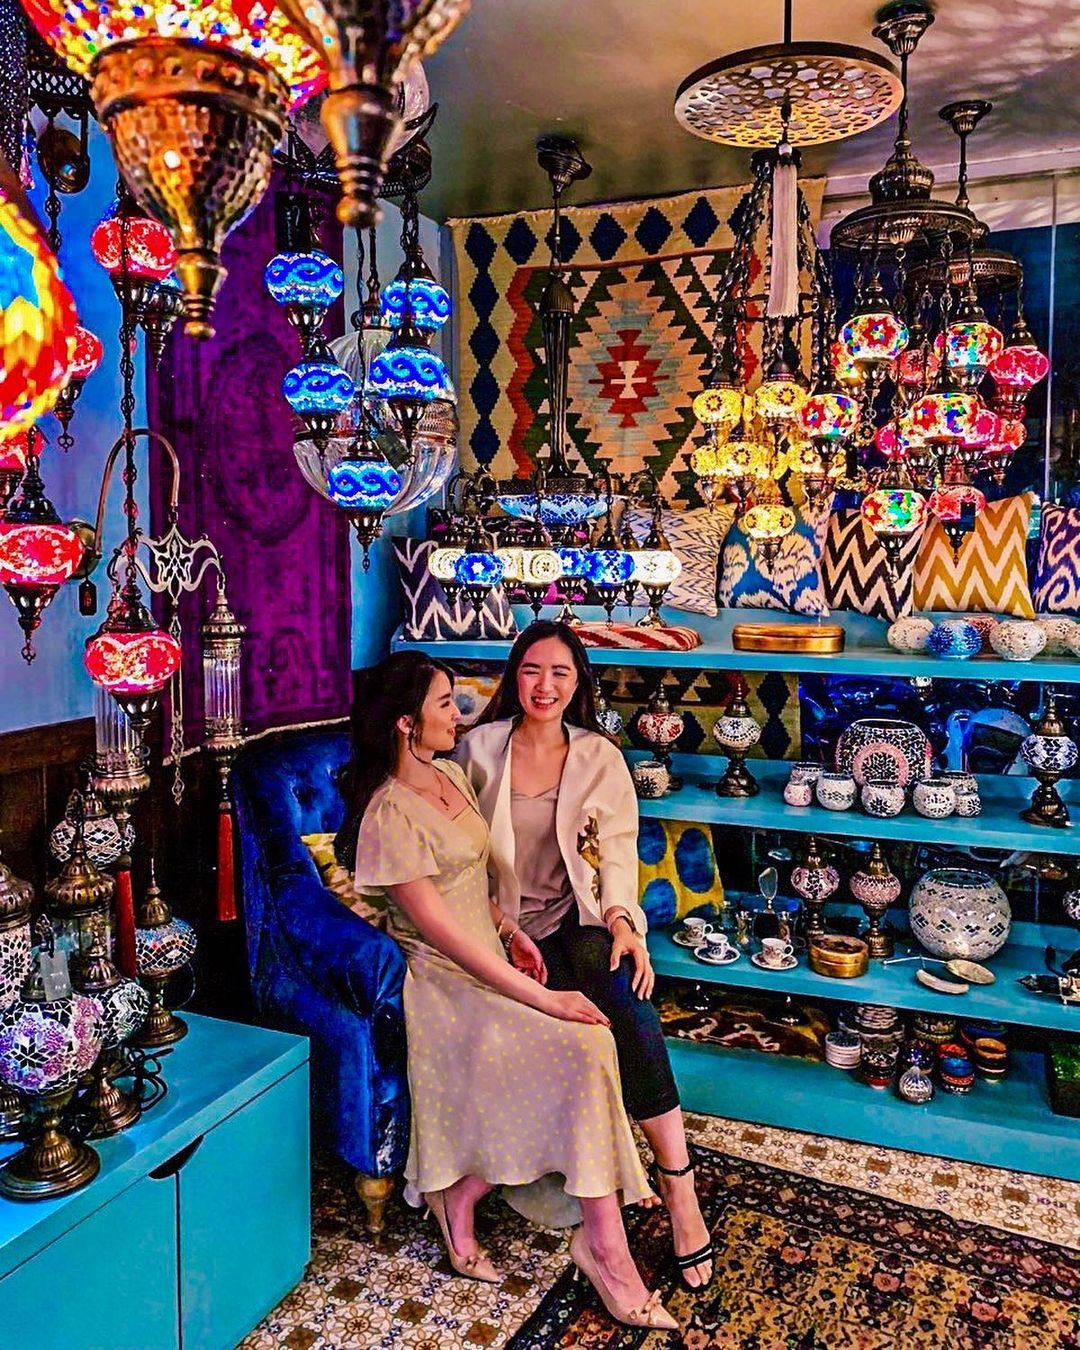 middle eastern and indian restaurants in jakarta - turkuaz lamps